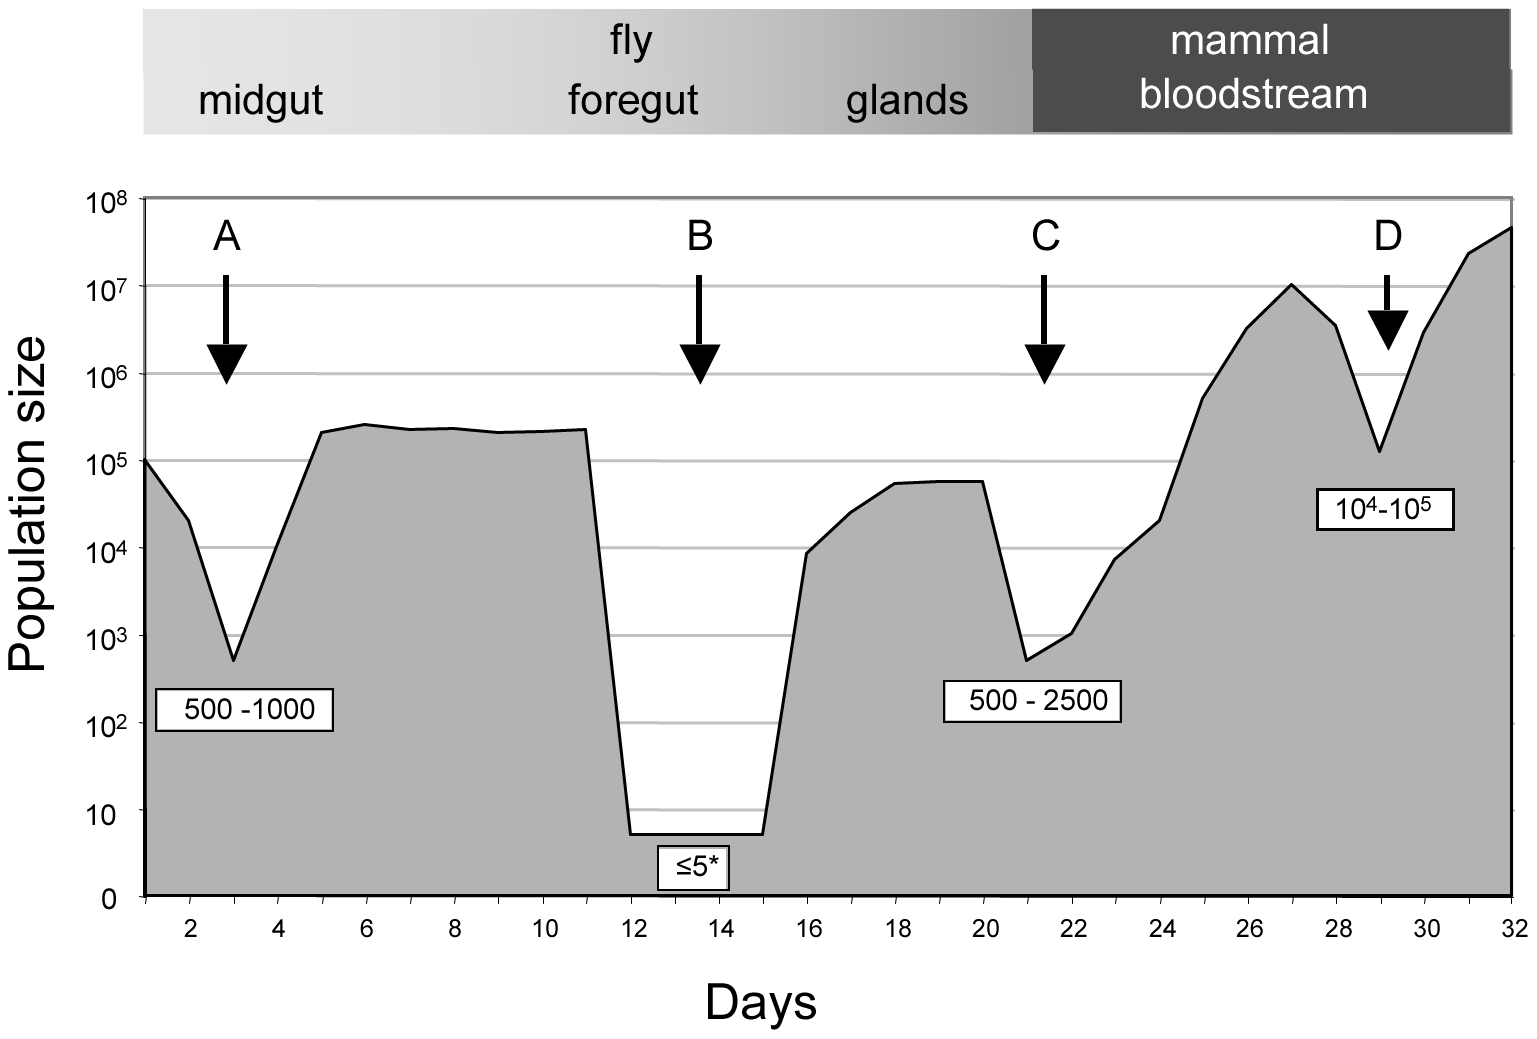 Population size through the life cycle of <i>T. brucei</i> based on data from this study.